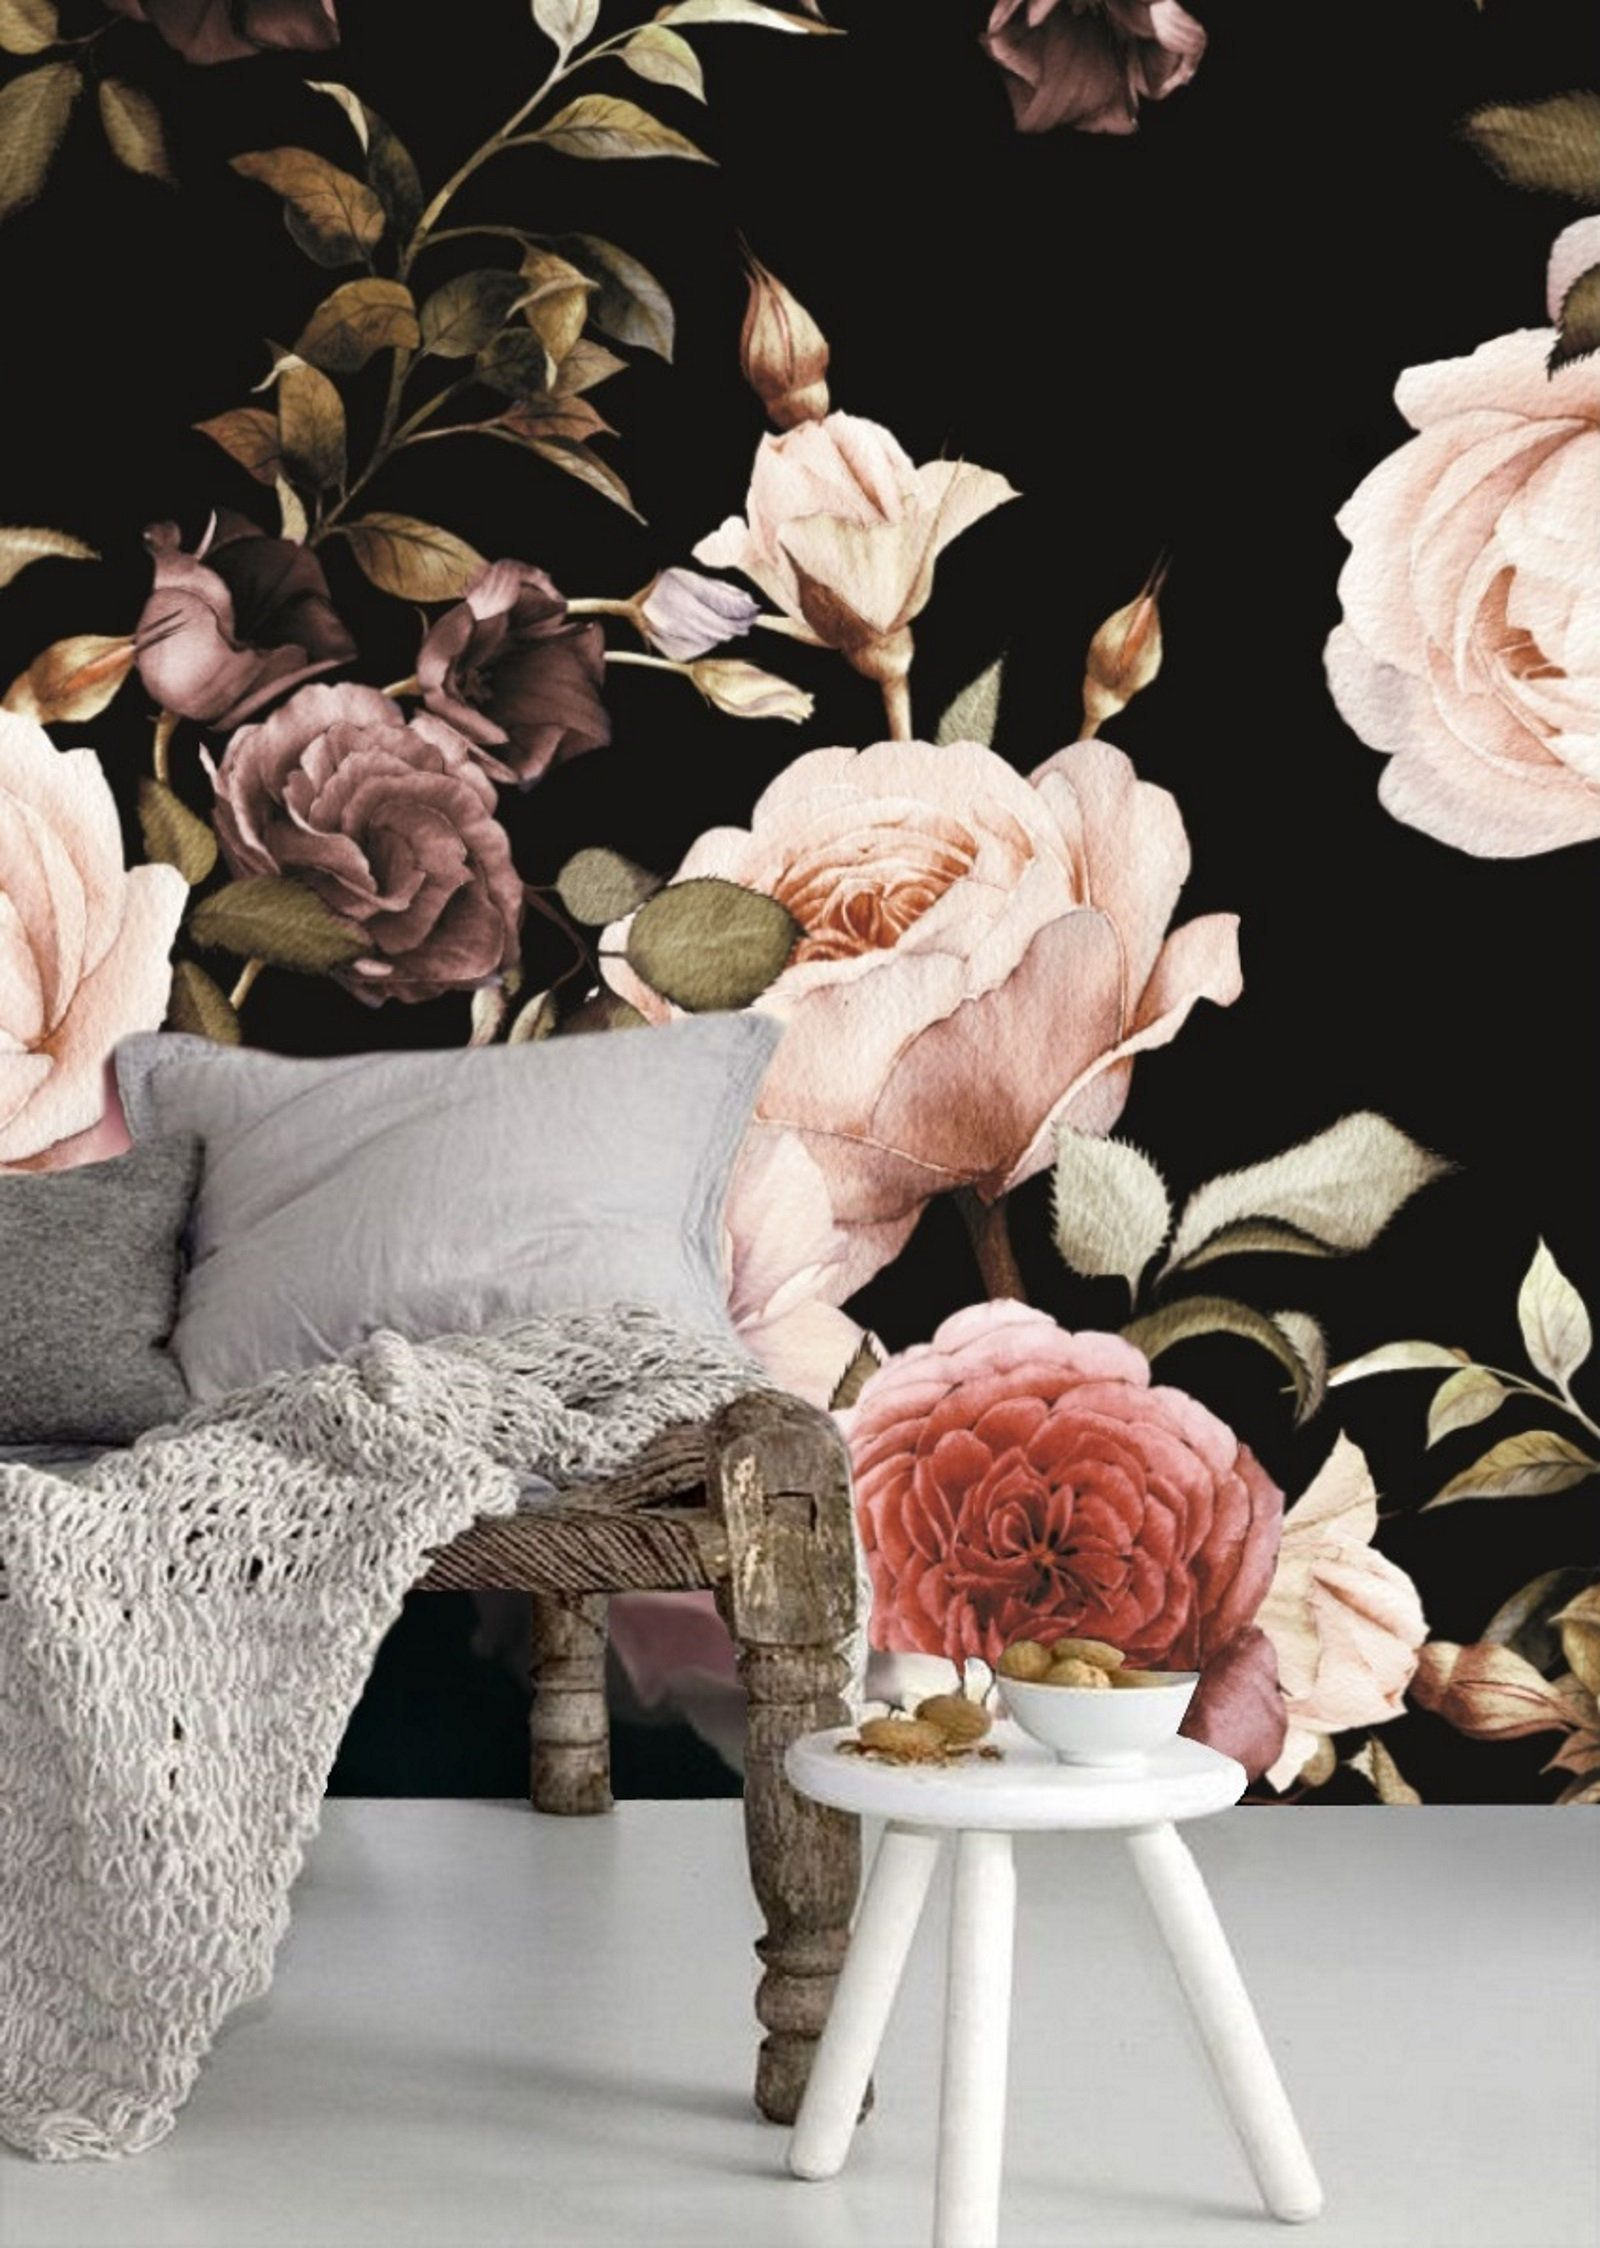 Dark Floral Wallpaper Mural Peel And Stick Wallpaper Floral Mural Removable Peony Wall Paper Re Black Floral Wallpaper Large Floral Wallpaper Floral Wallpaper